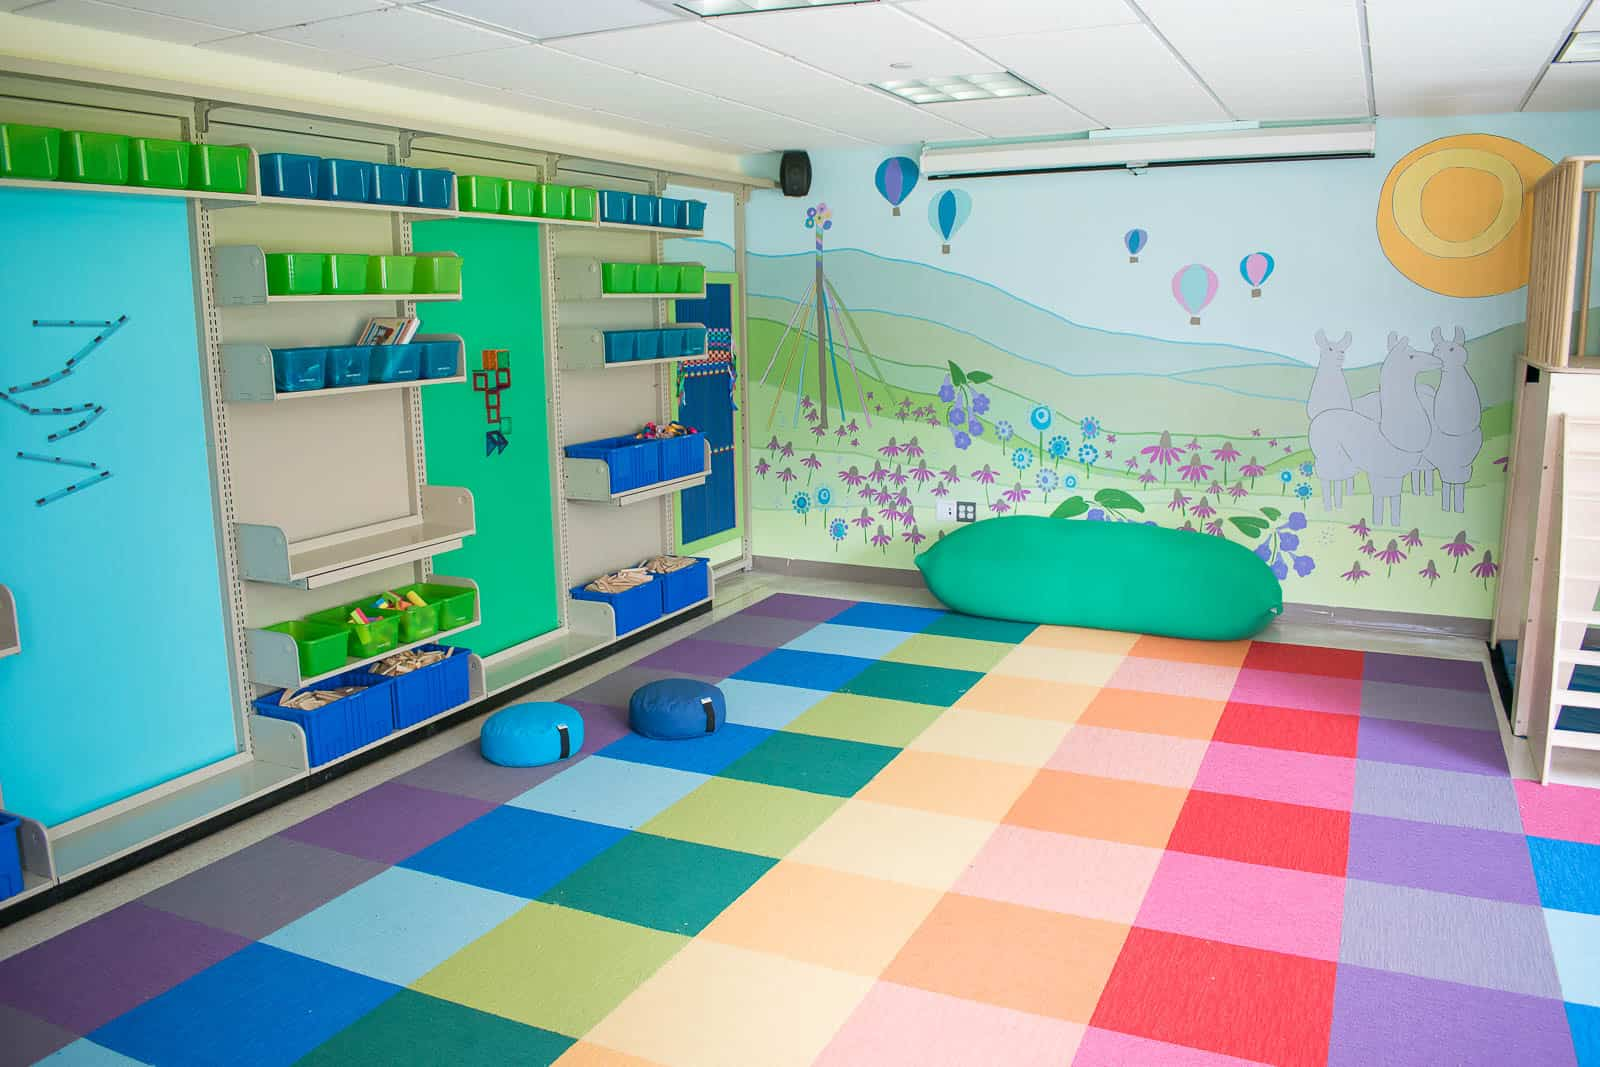 colorful carpet tiles in library classroom